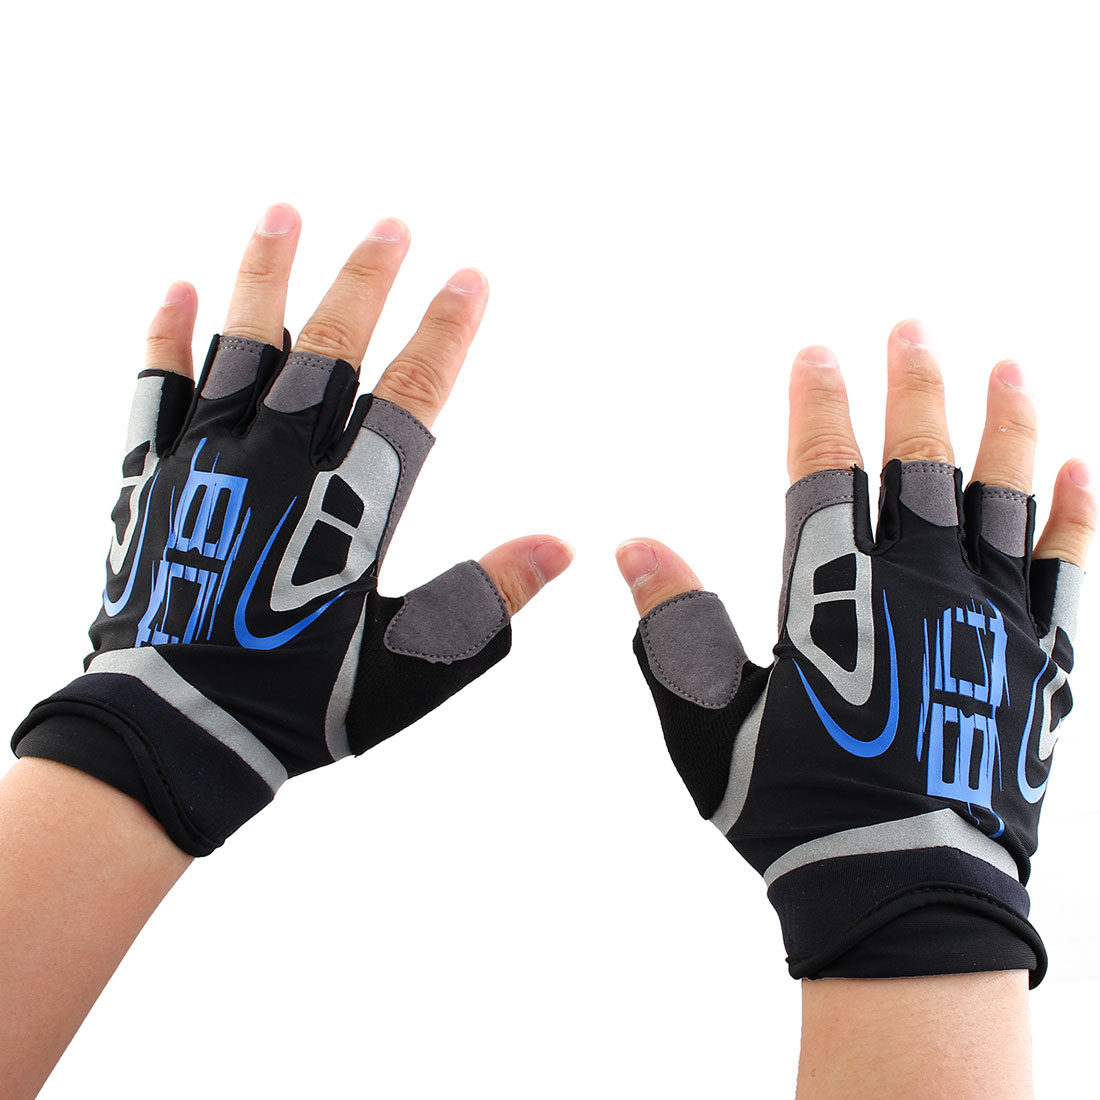 Boodun Authorized Outdoor Sports Cycling Gym Workout Training Exercise Weight Lifting Non-slip Half Finger Gloves Blue Size M Pair